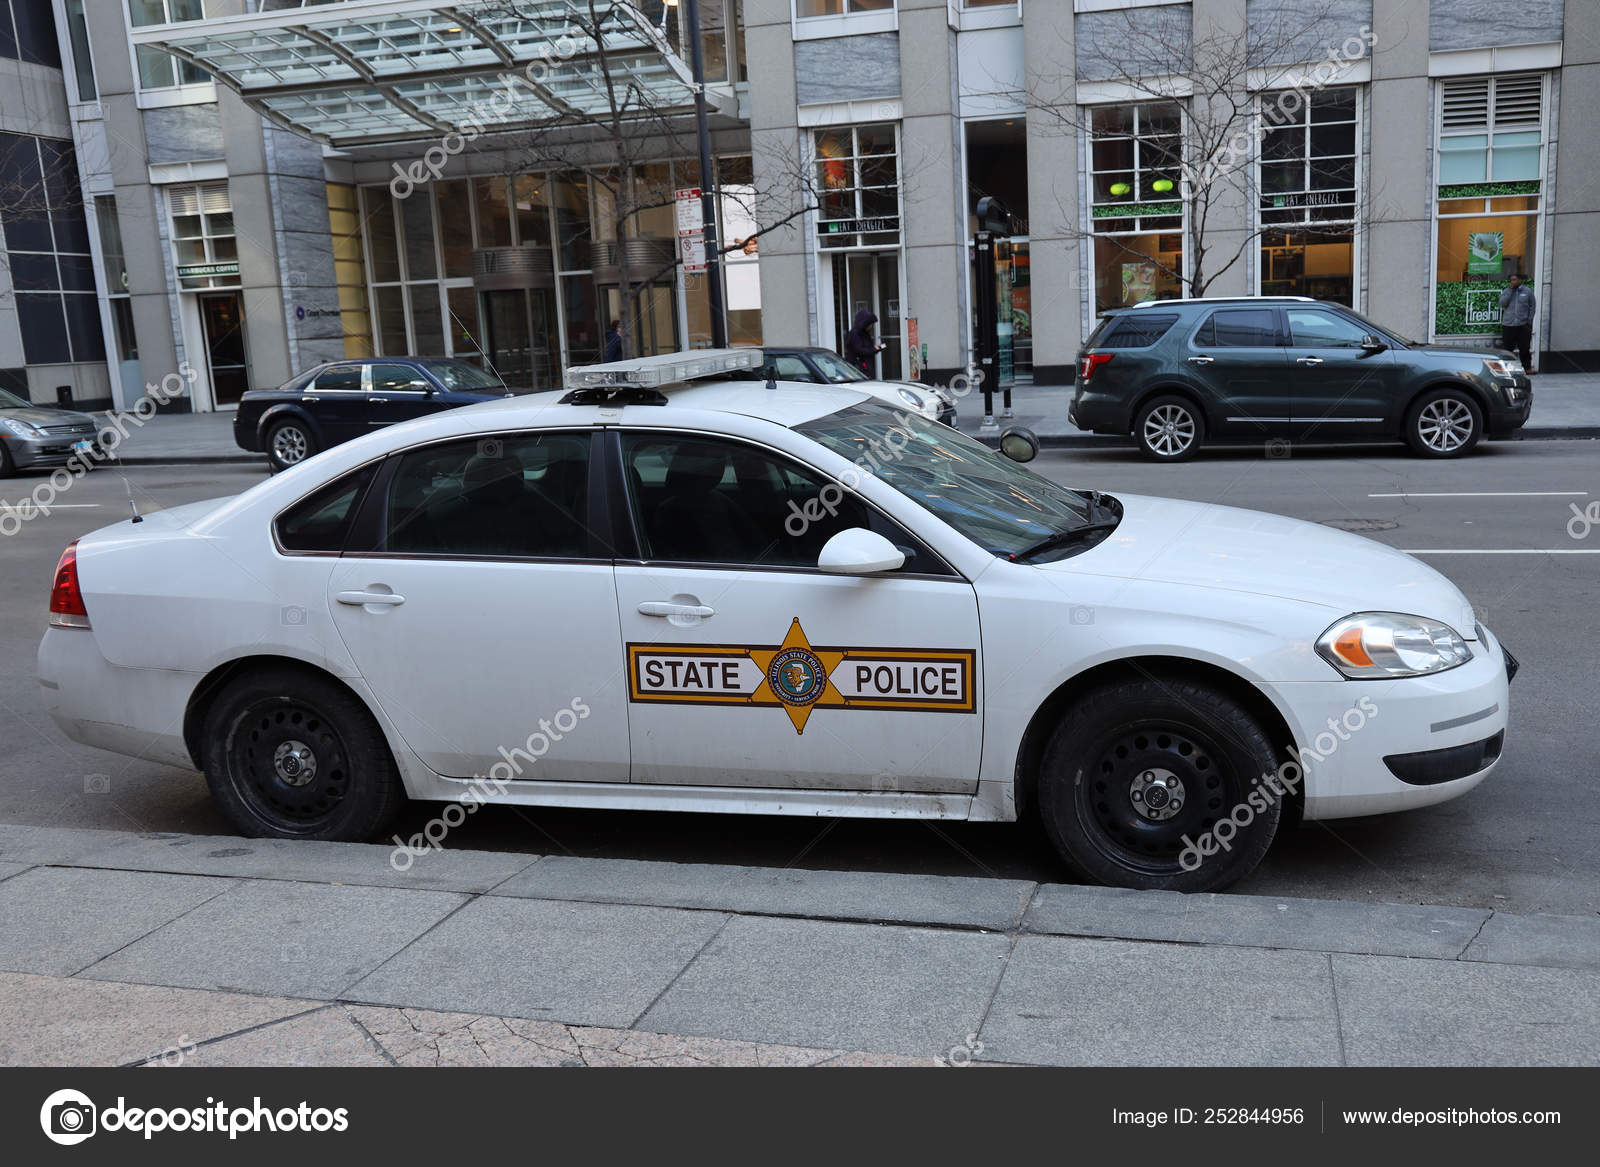 Chicago Illinois March 2019 Illinois State Police Car Downtown Chicago Stock Editorial Photo C Zhukovsky 252844956